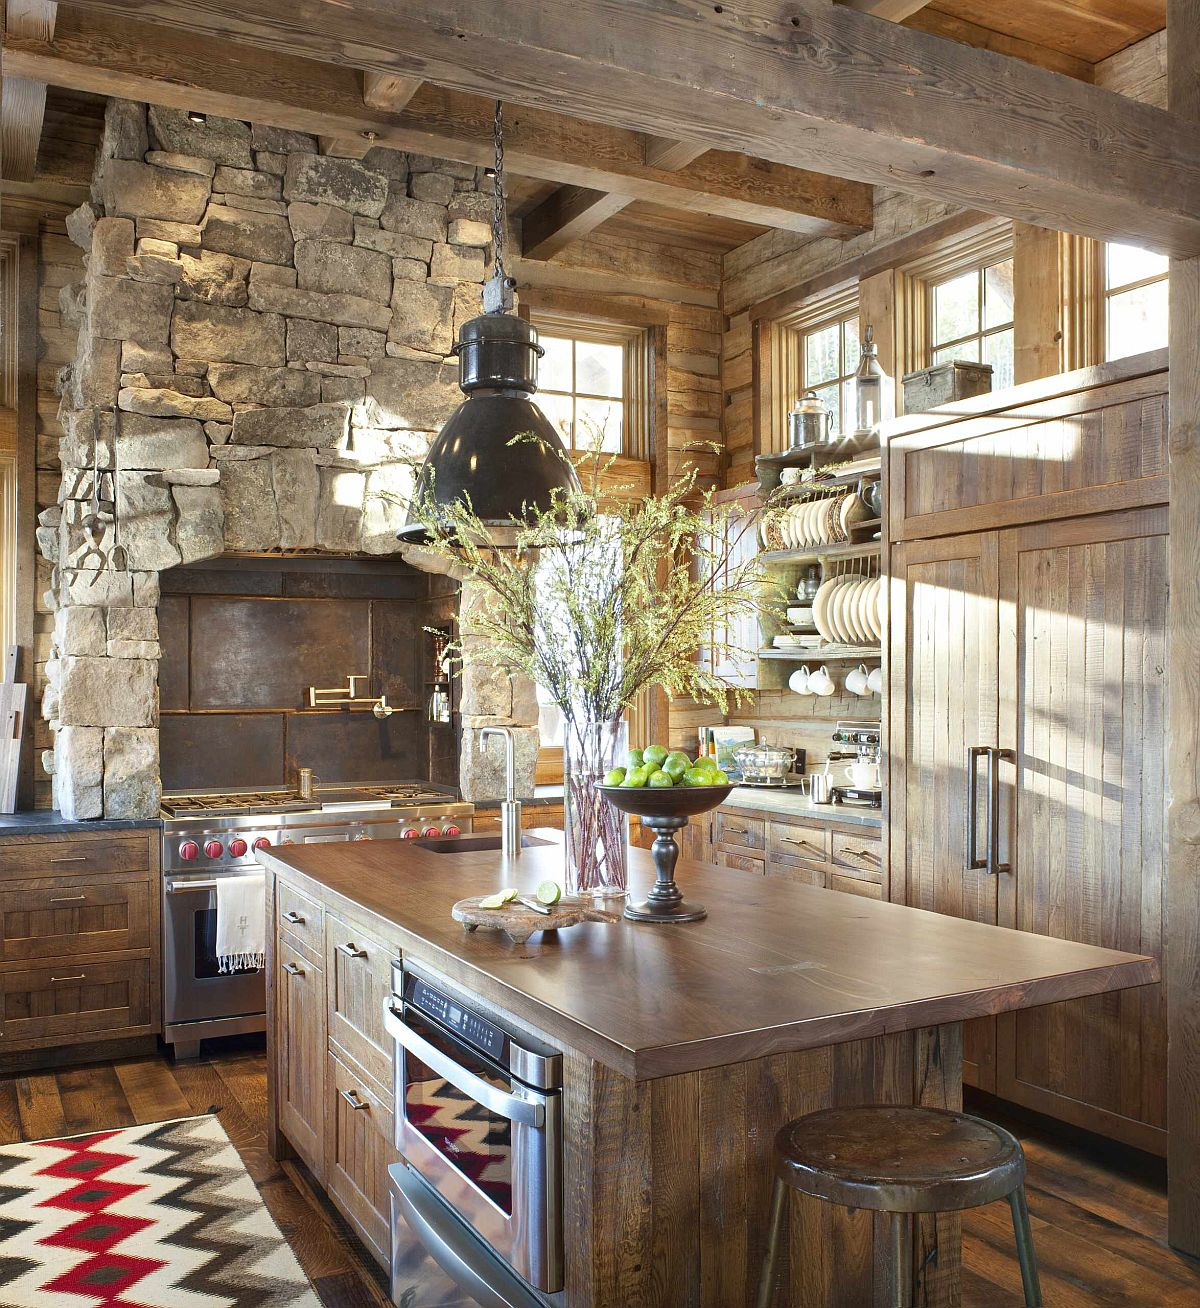 Spacious rustic kitchen with wooden countertops, cabinets and custom metal range